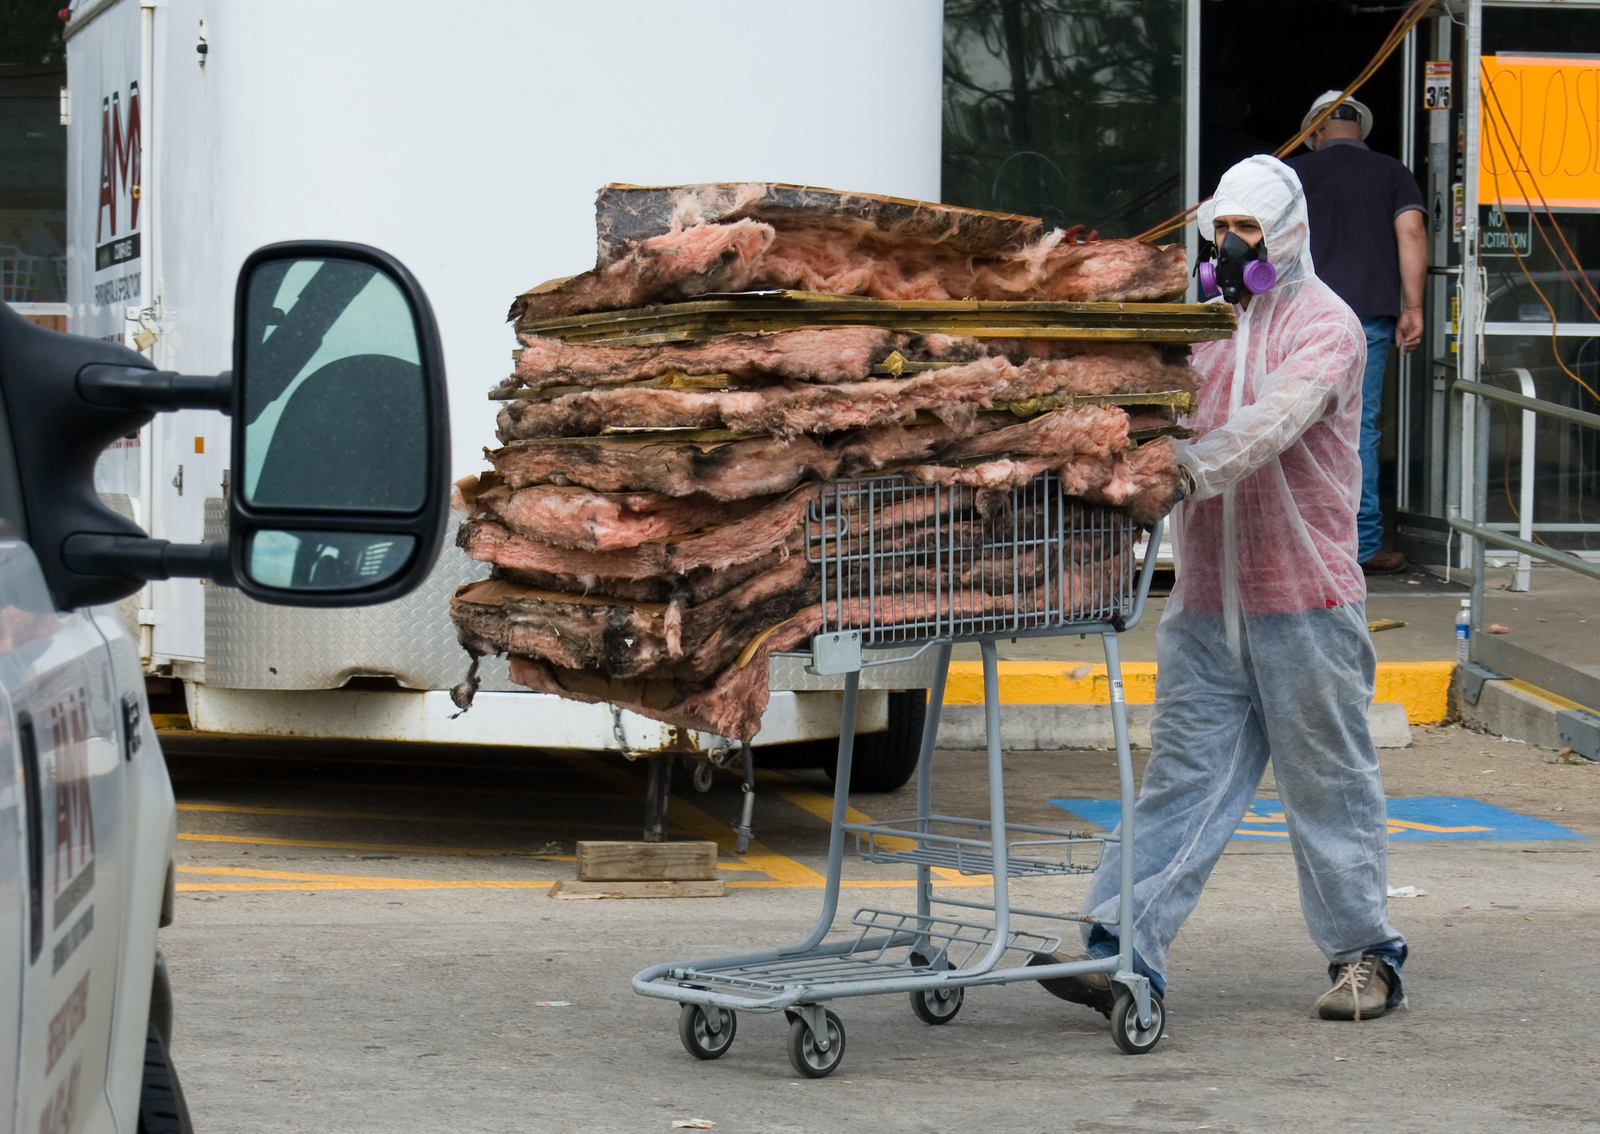 Hurricane/Tropical Storm - Winnie, Texas, September 18, 2008 -- A Hazmat team removes insulation from a neighborhood grocery store that suffered heavy flood damage during Hurricane Ike.  The storm caused severe damage all along the southeast Texas coast when it came ashore on September 13th.